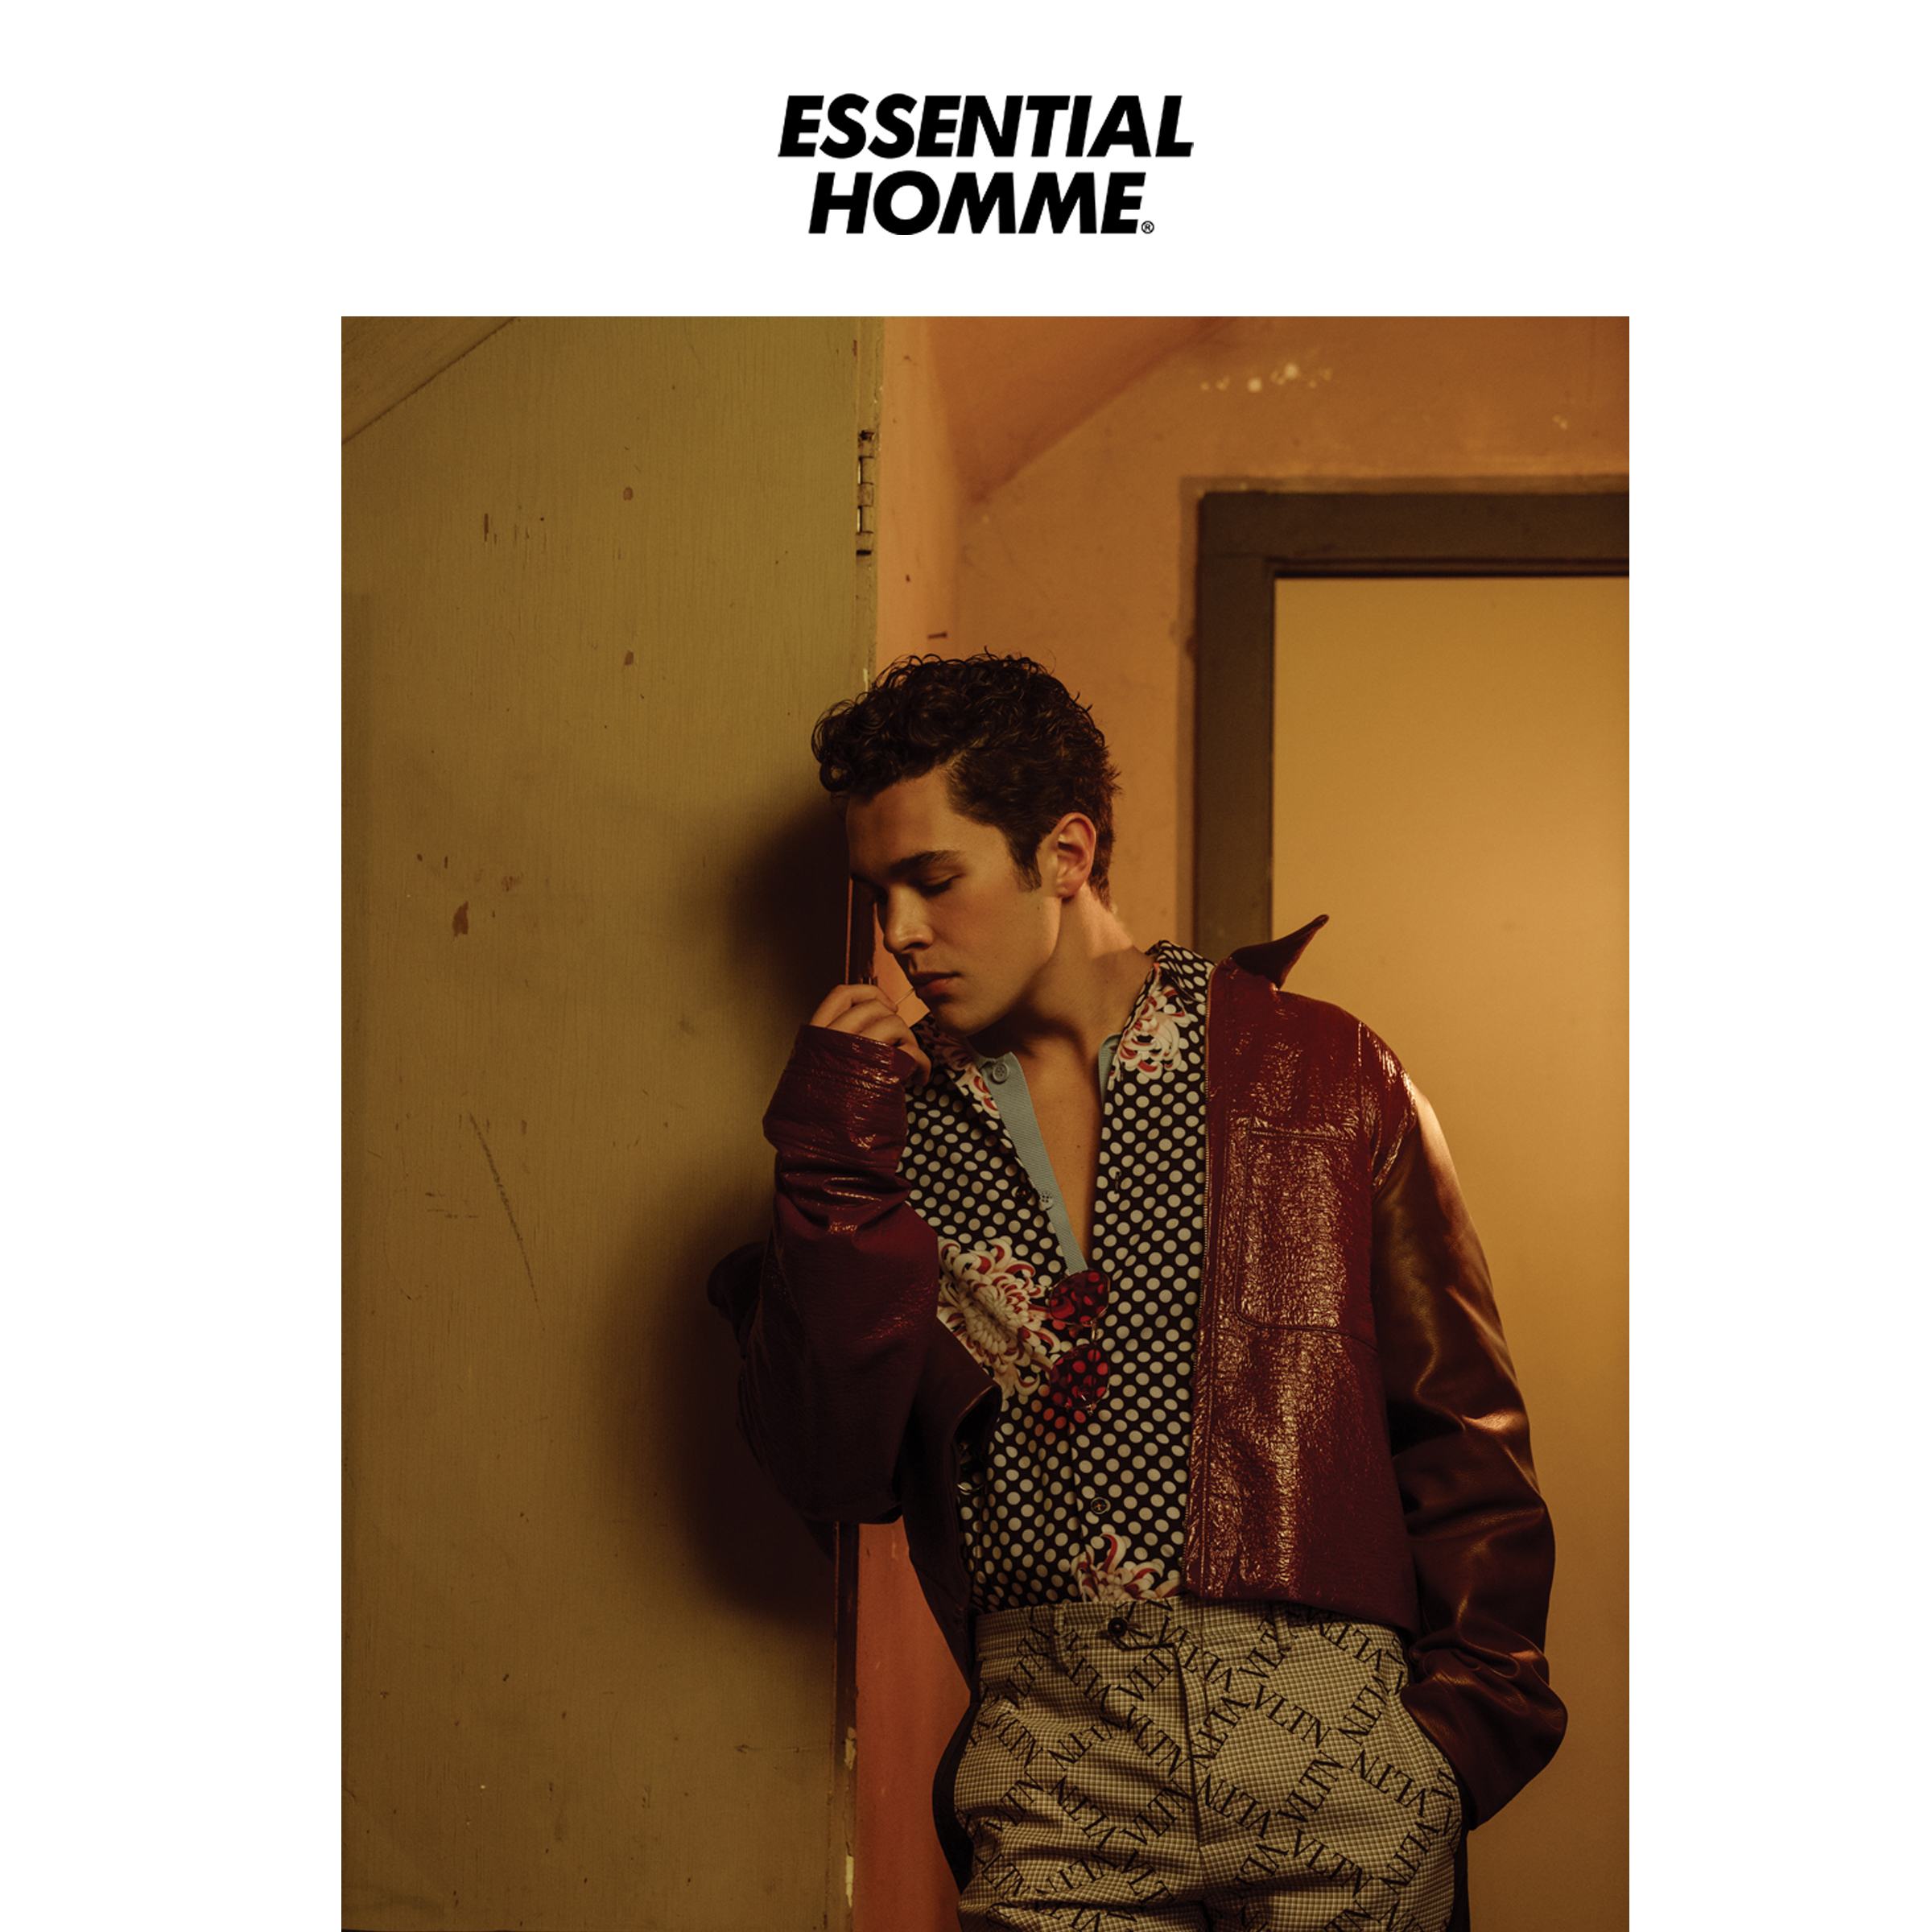 Essential Homme_austin mahone.jpg